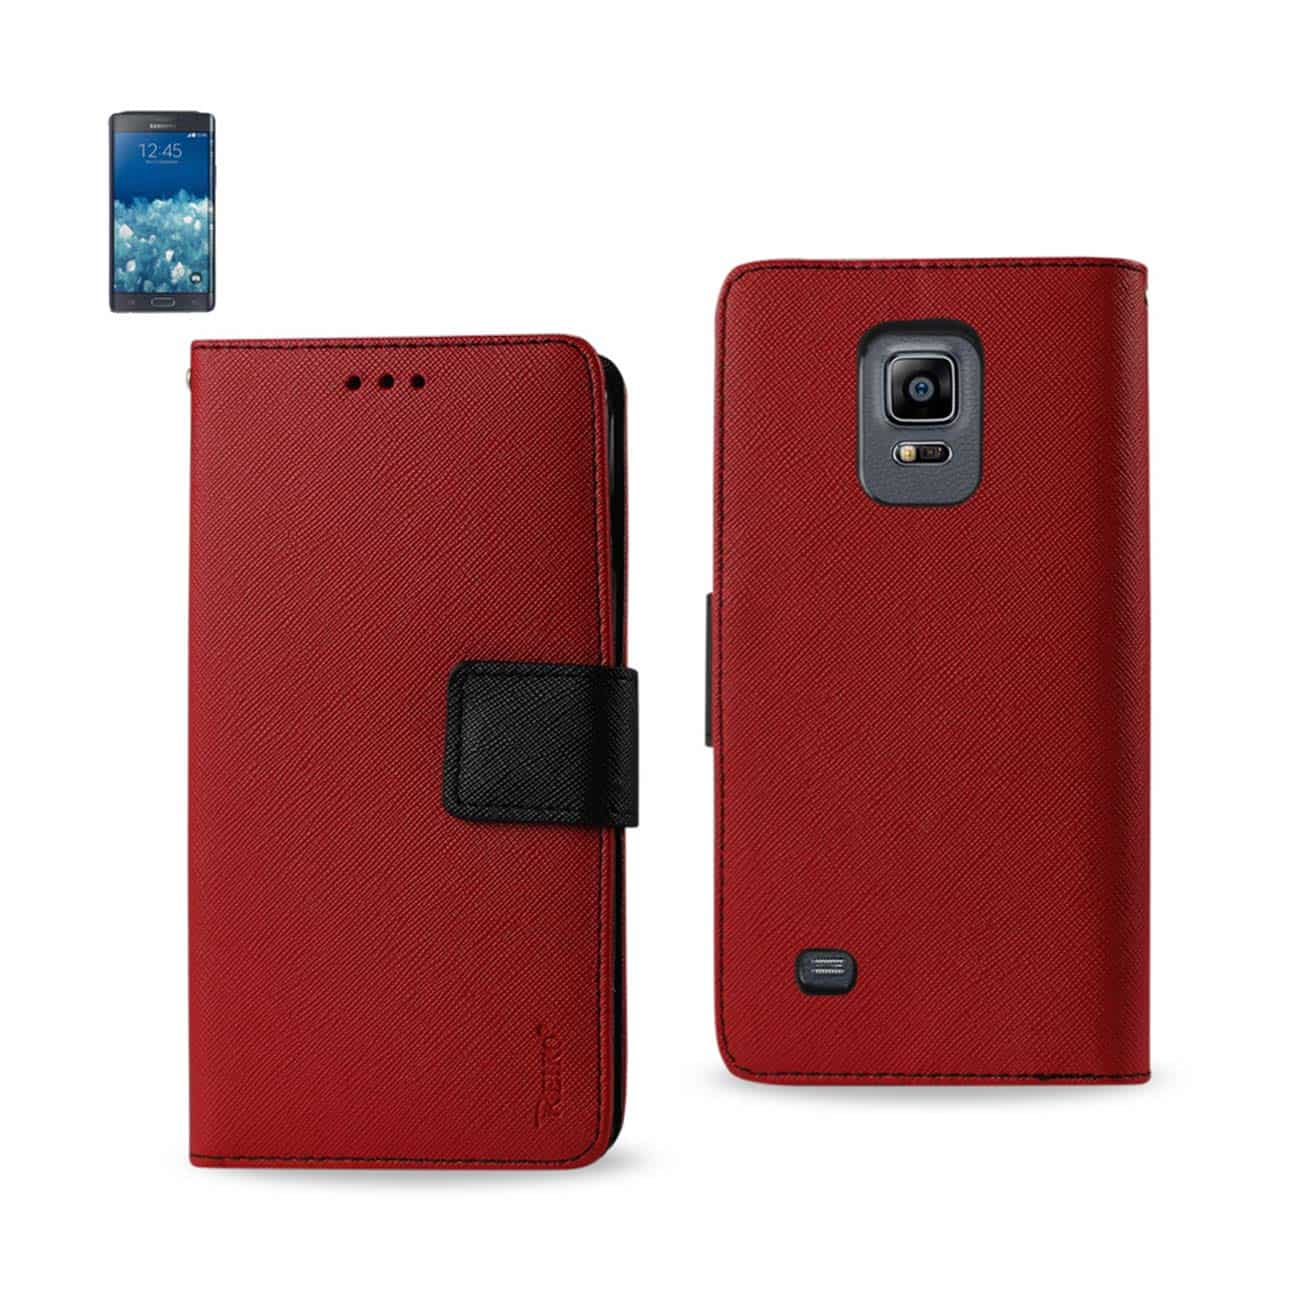 SAMSUNG GALAXY NOTE EDGE 3-IN-1 WALLET CASE IN RED